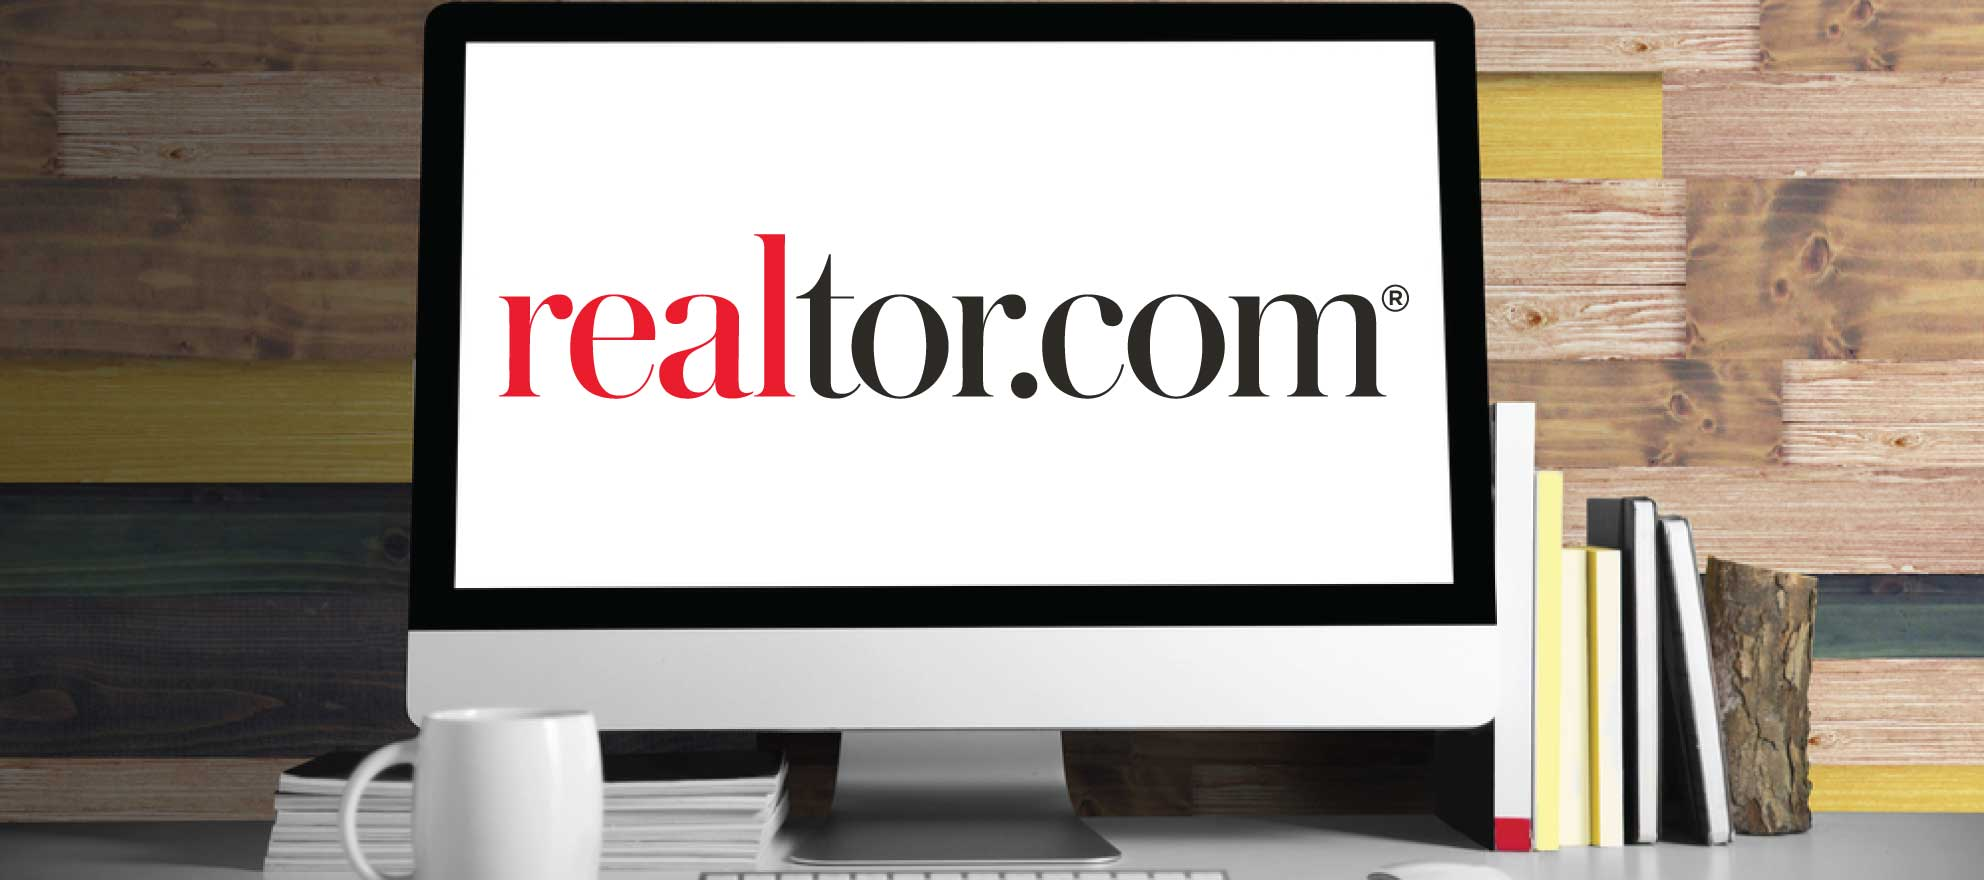 What do you think of realtor.com's new look?